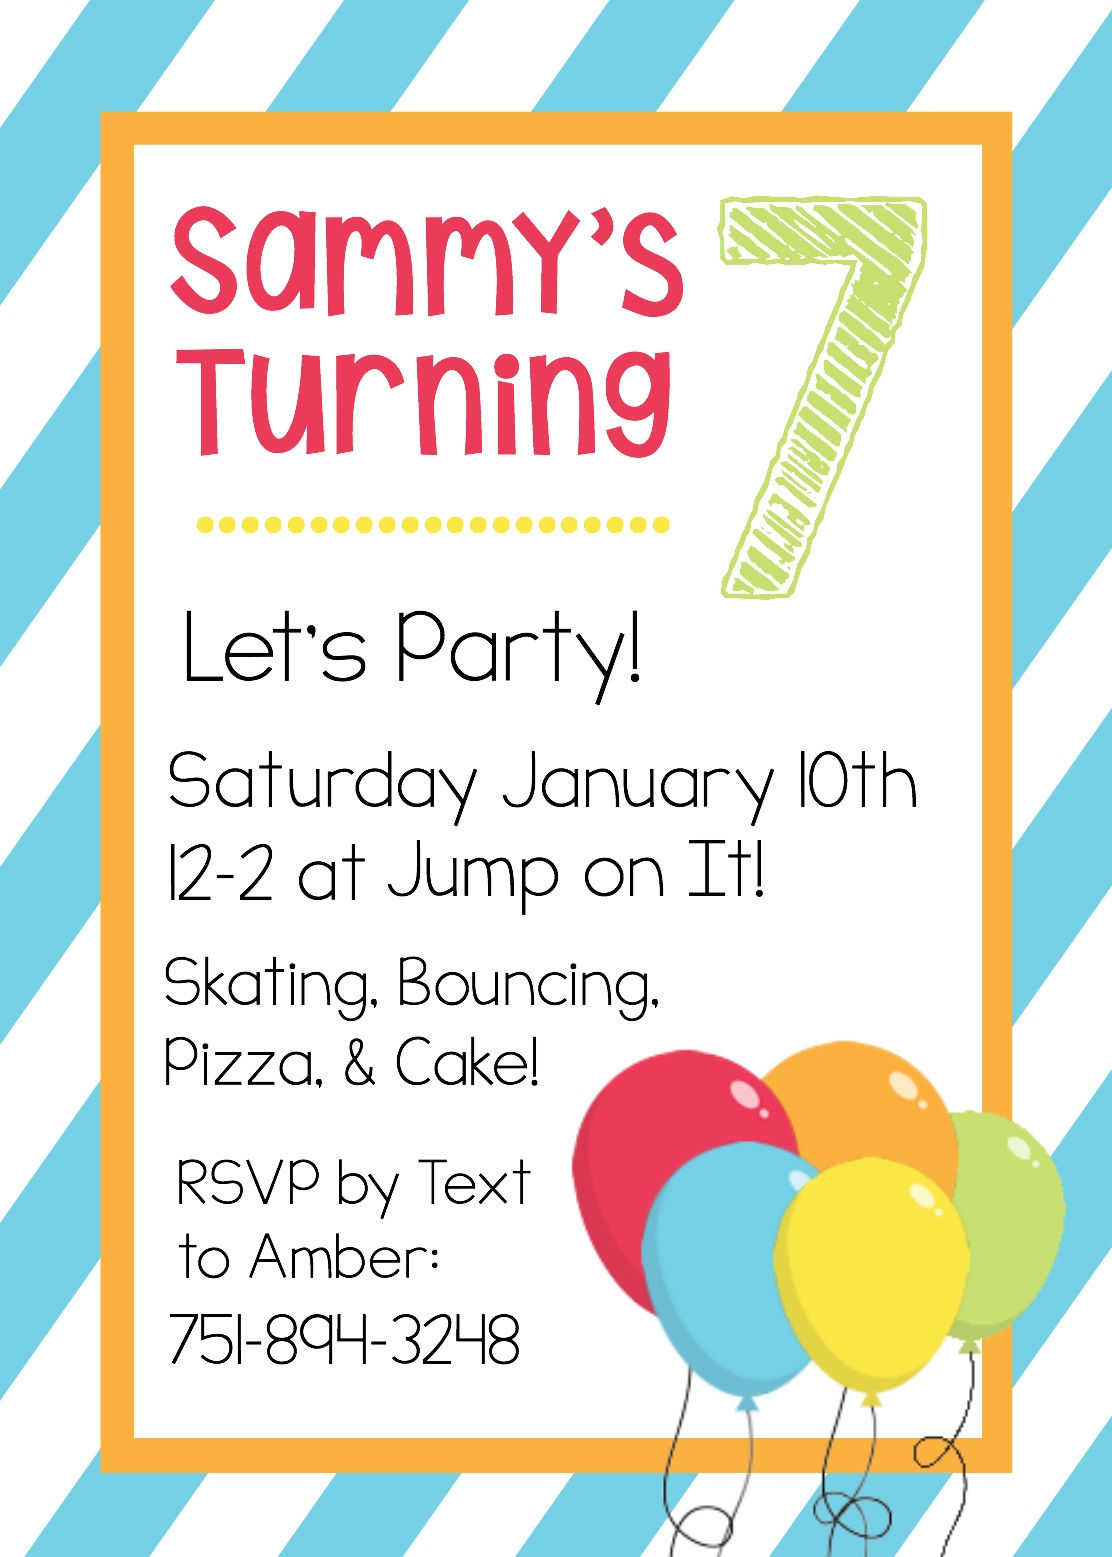 Free Printable Birthday Invitation Templates - Free Printable Pool Party Invitations